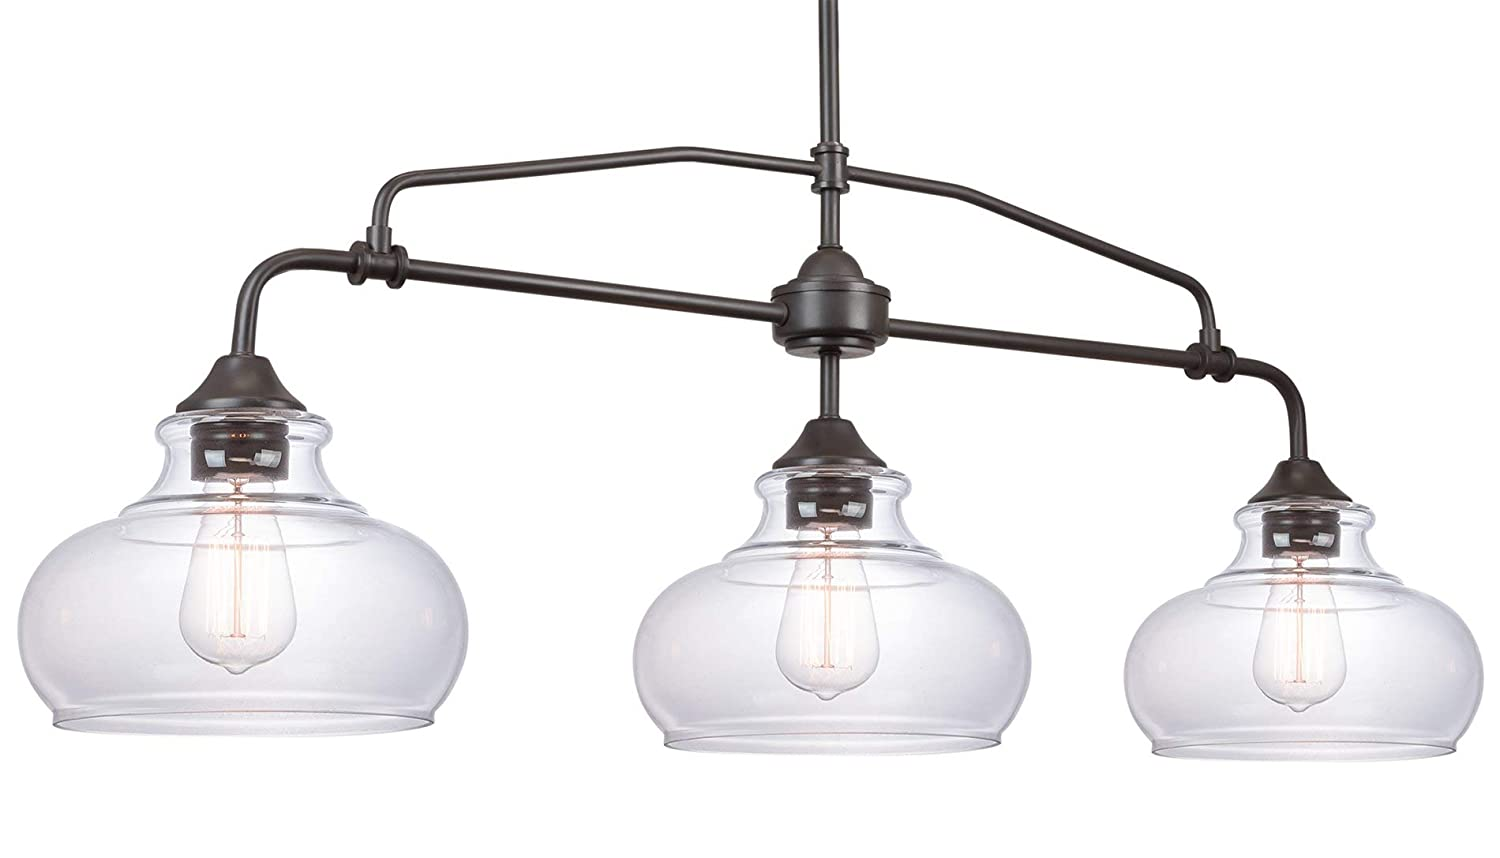 """Kira Home Harlow 37.5"""" Modern Industrial Farmhouse 3-Light Island Light with Clear Glass Shades, Adjustable Hanging Height, Oil Rubbed Bronze Finish"""